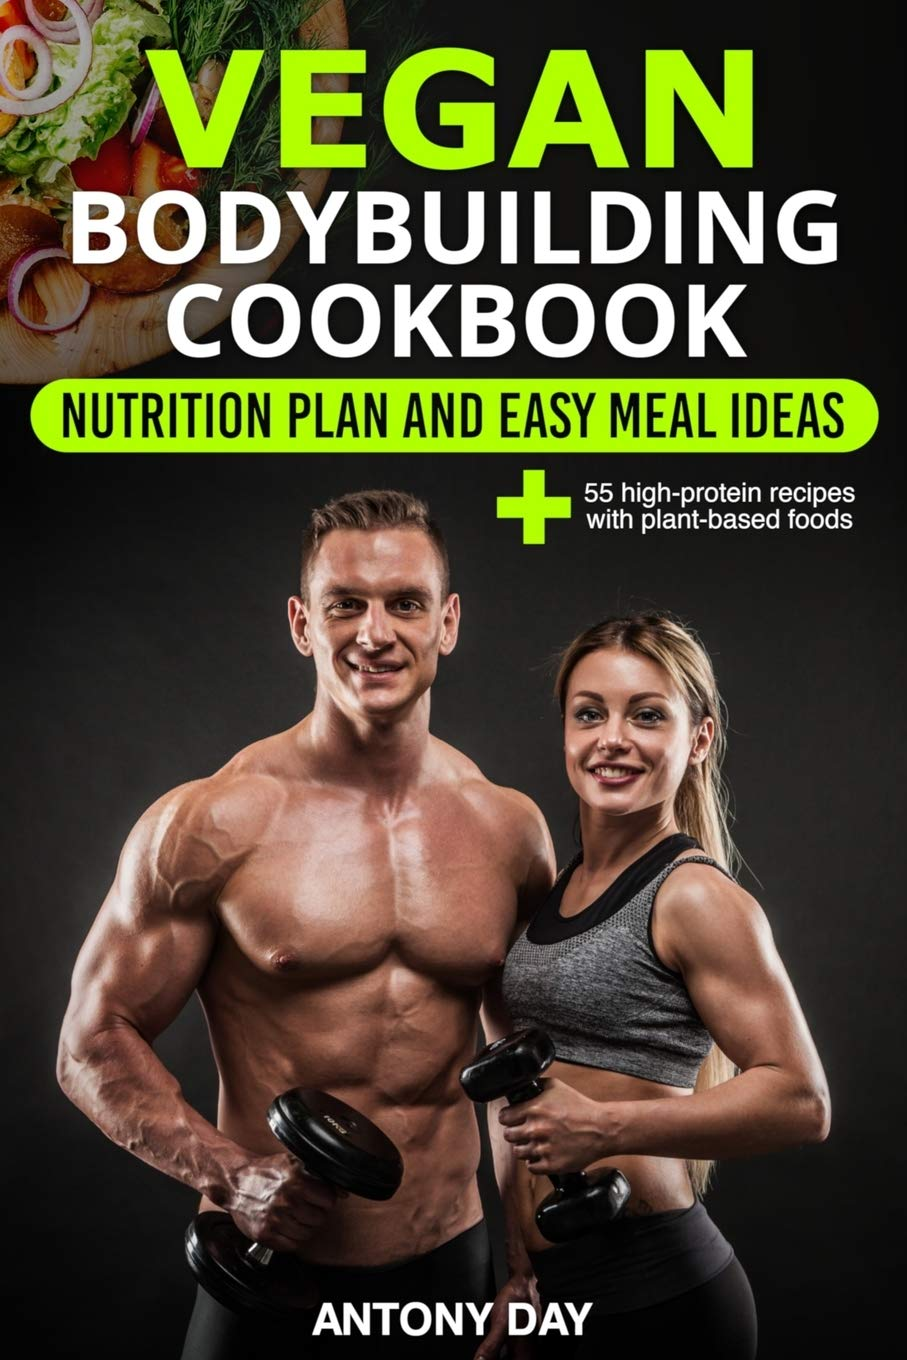 Vegan Bodybuilding Cookbook Nutrition Diet Plan And Easy Meal Ideas For Vegetarian Athletes Bodybuilders Fitness And Sports Enthusiast 55 High Protein Recipes With Plant Based Foods Day Antony 9781660088935 Amazon Com Books